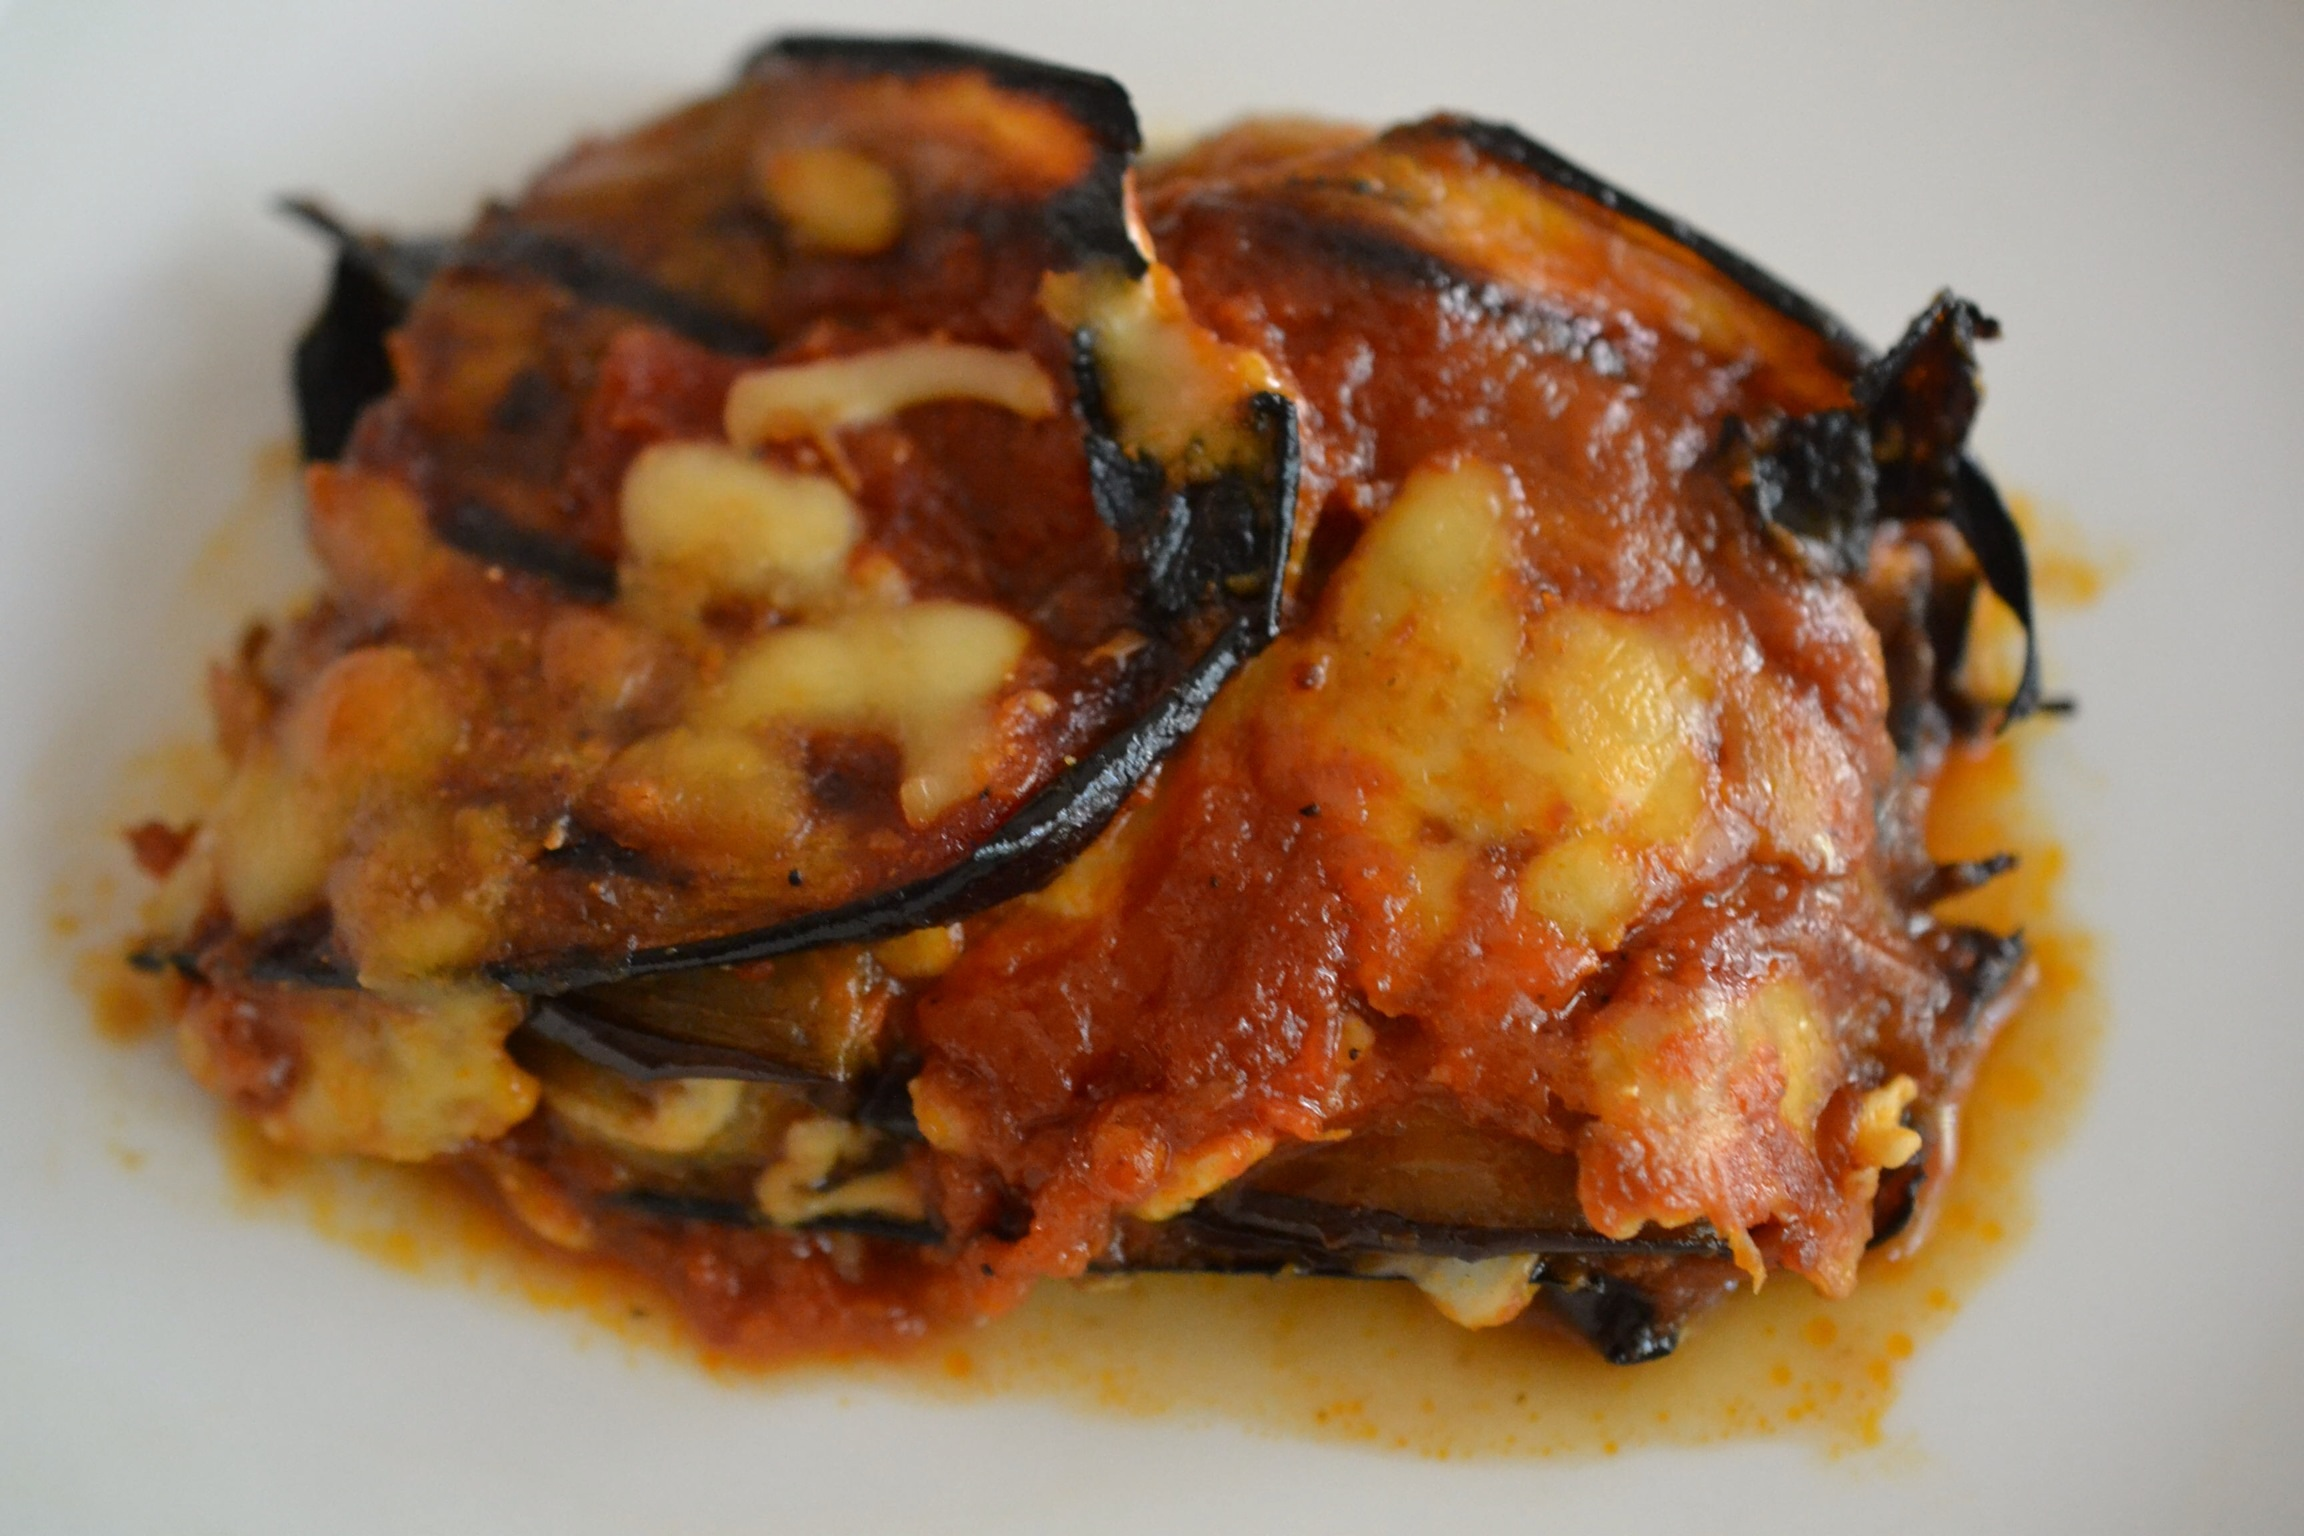 Grilled eggplant parmigiana family recipe